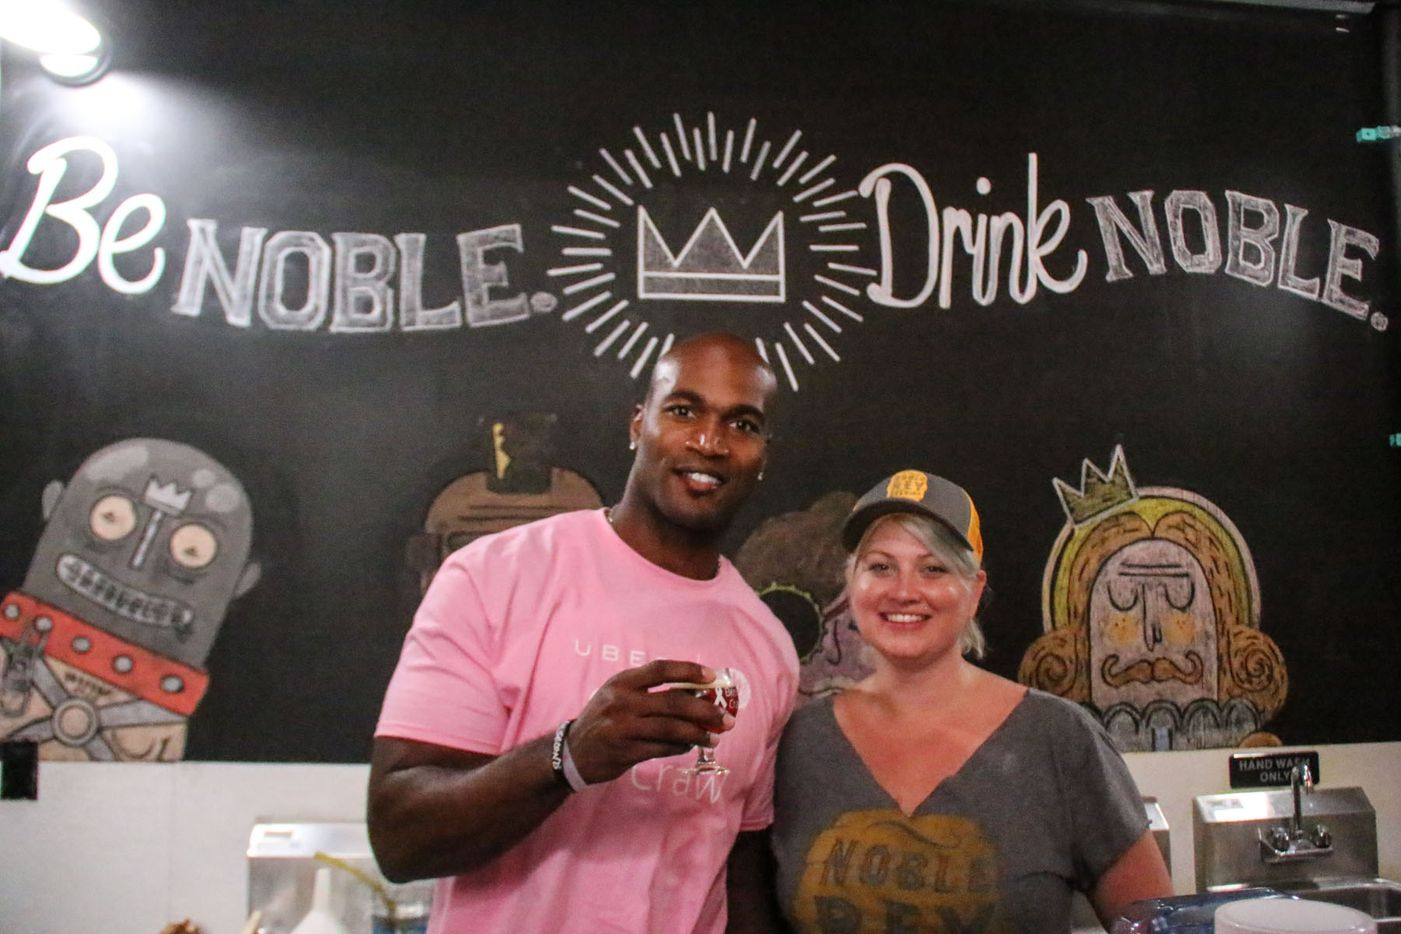 Bradie James posed with Michelle Carrow at Noble Rey Brewing Co. during the inaugural Brew Crawl for Breast Cancer on Saturday in Dallas. The event benefited James' Foundation 56 breast cancer nonprofit.